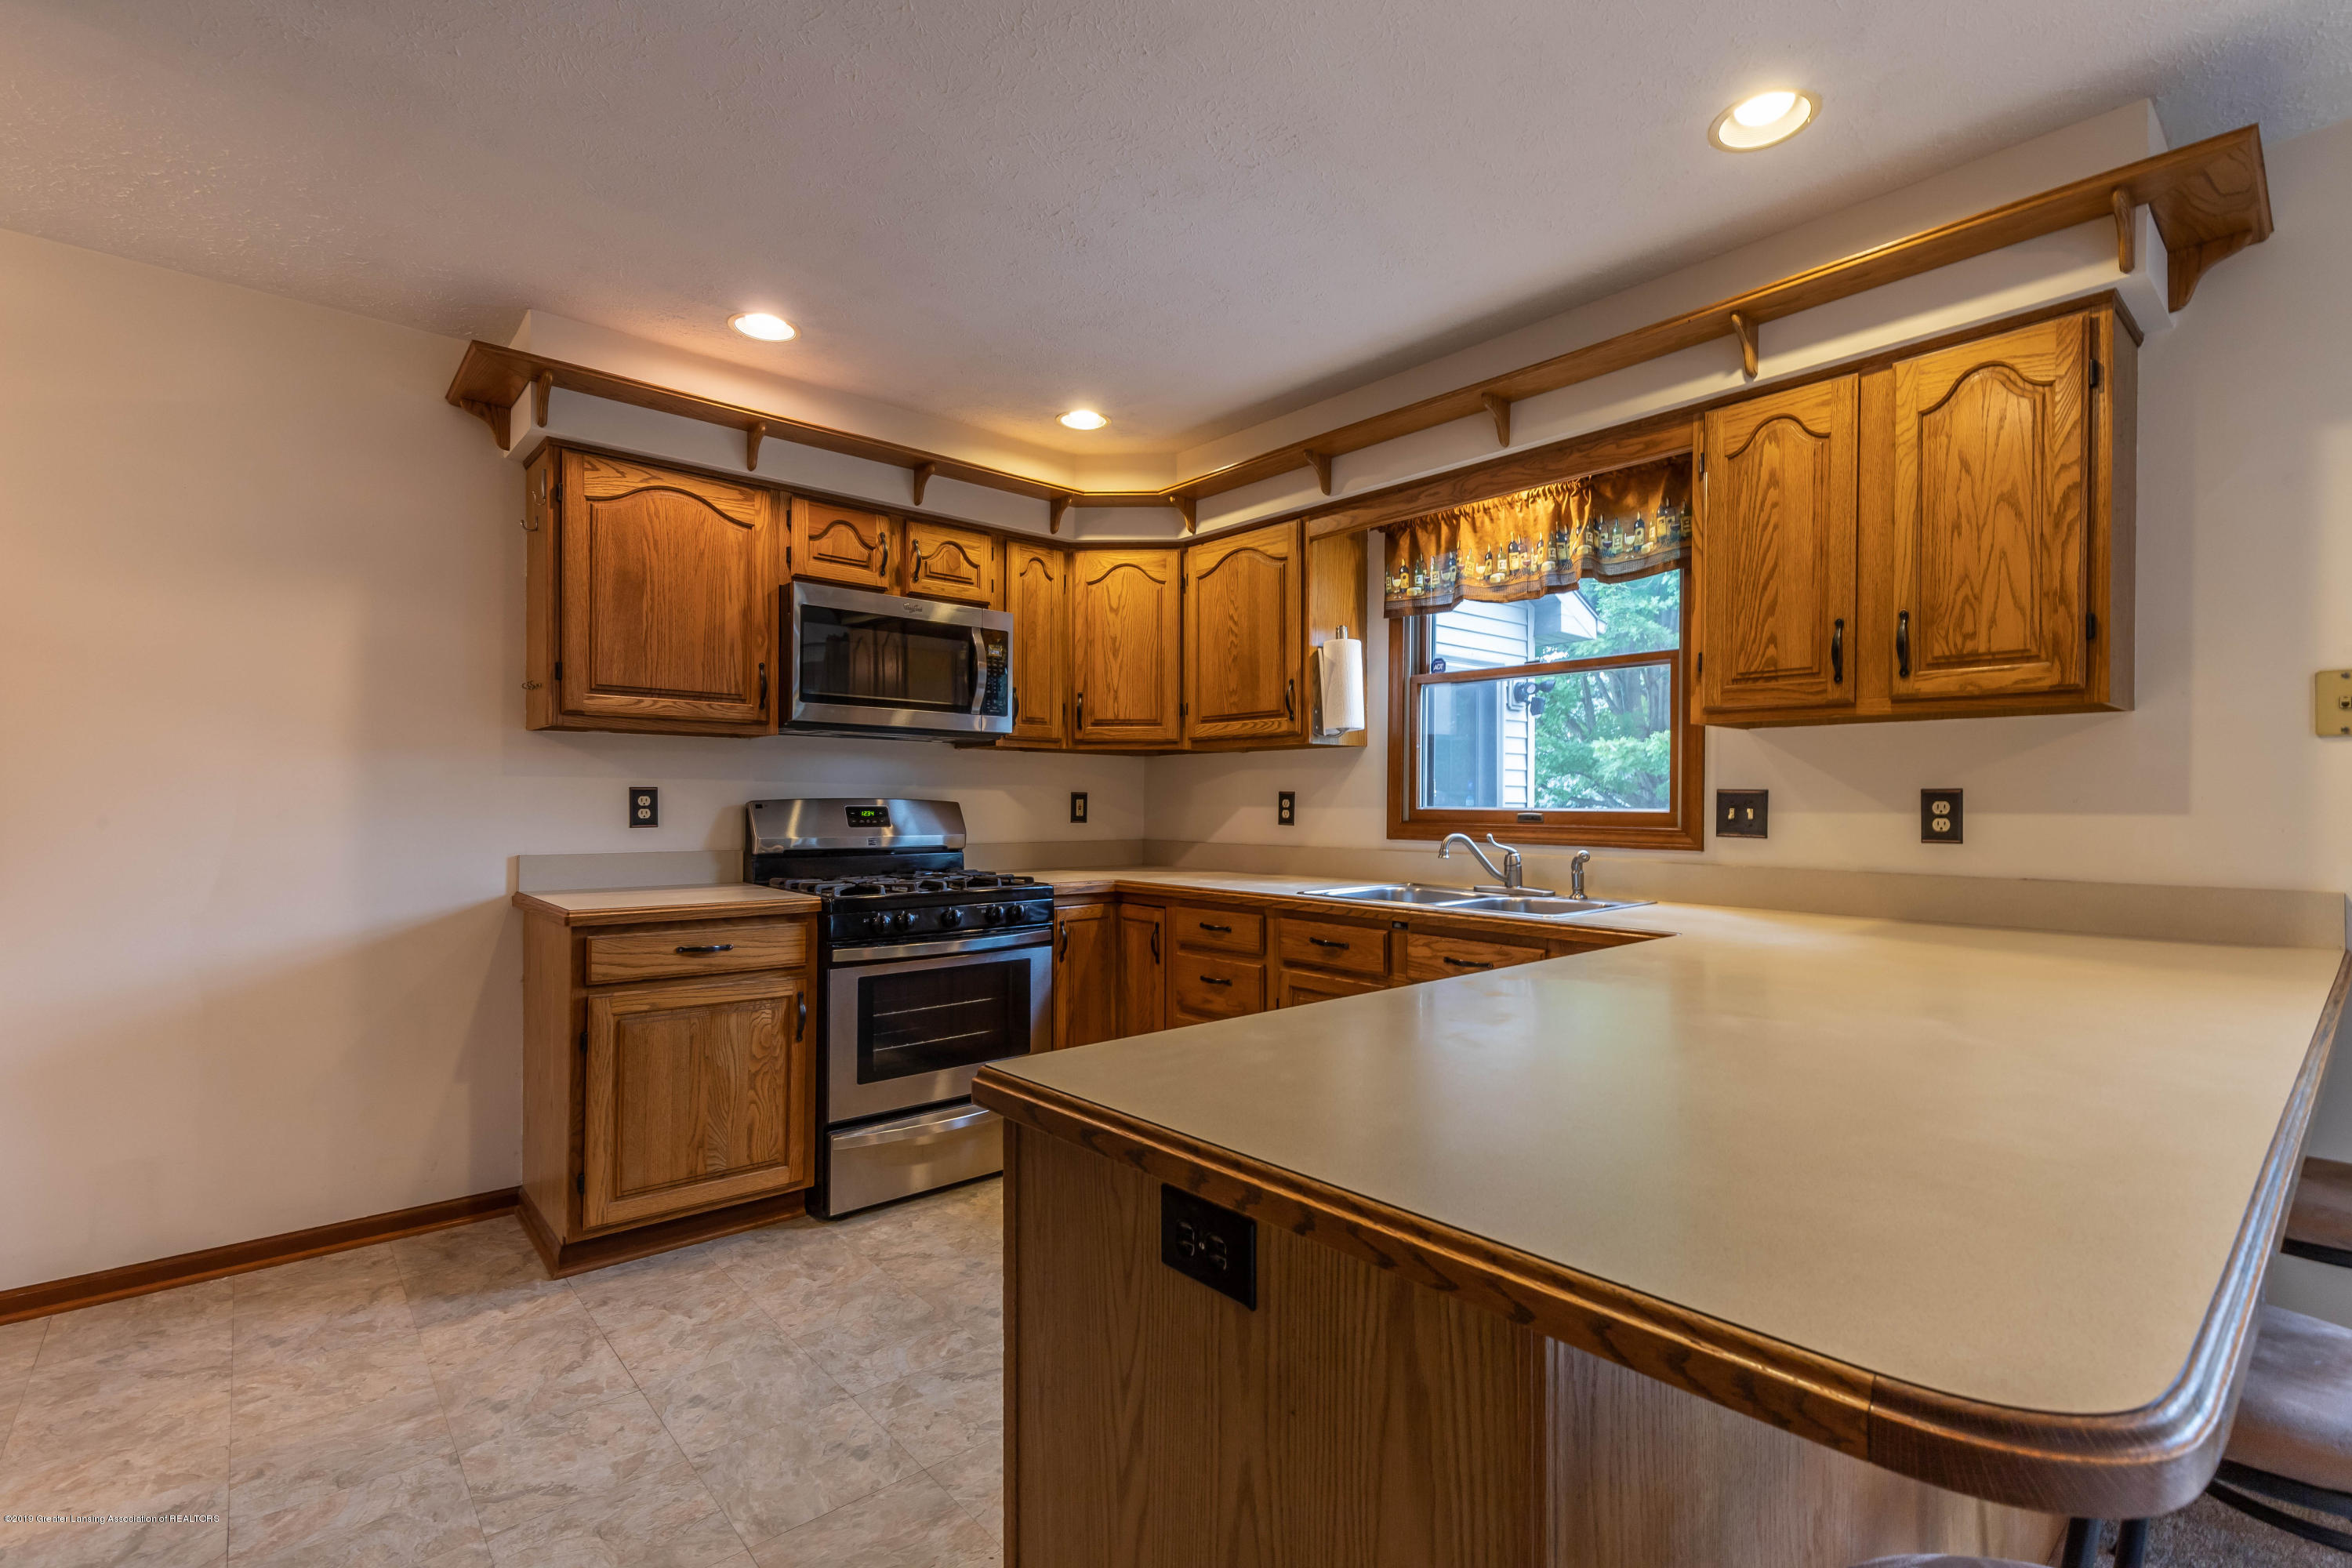 1258 Castlewood Cir - candlewoodkit2 (1 of 1) - 10